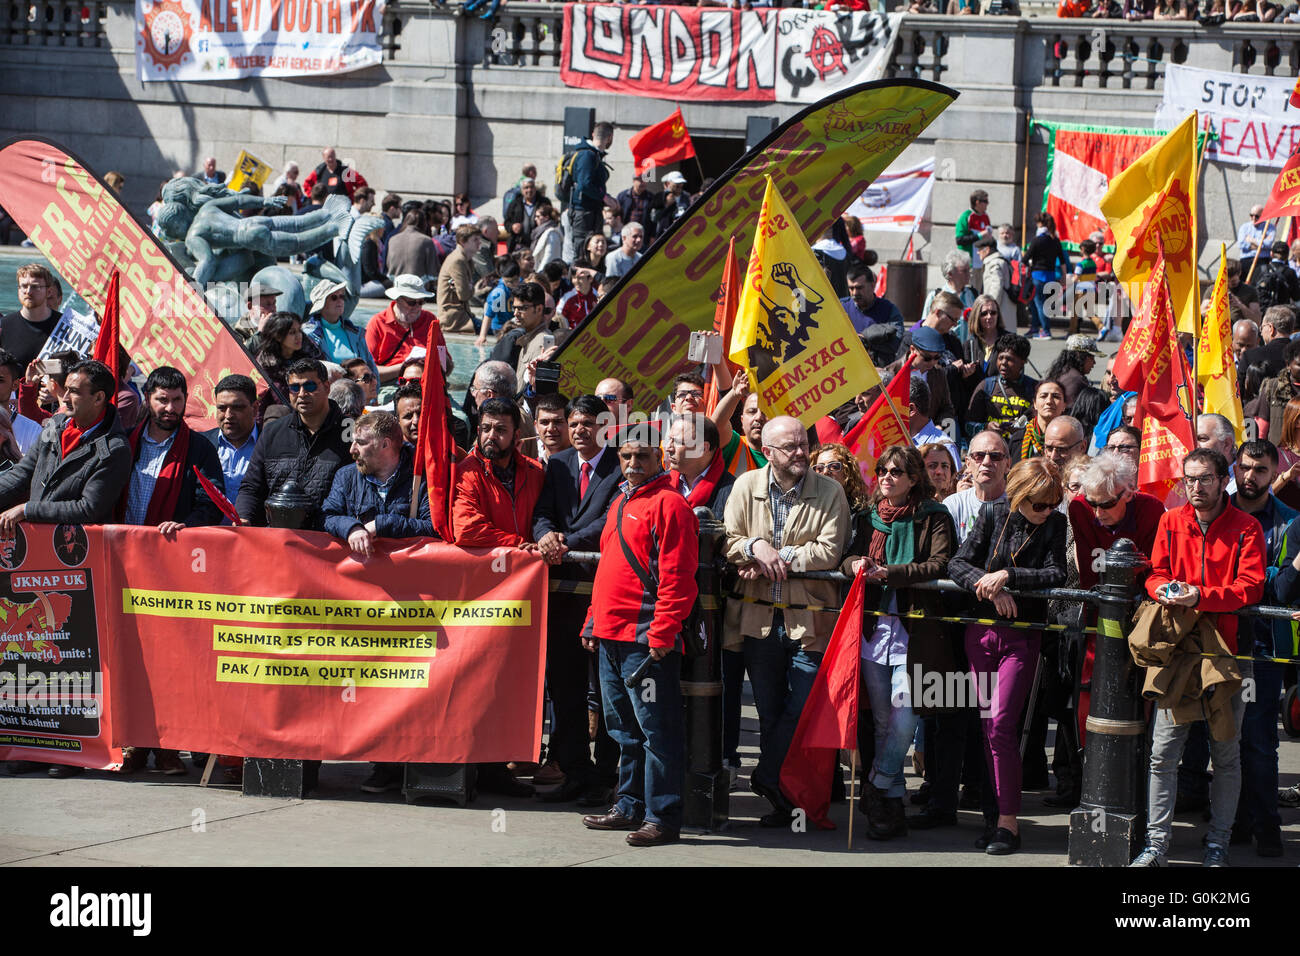 London, UK. 1st May, 2016. Marchers assemble for the May Day rally in Trafalgar Square. Credit:  Mark Kerrison/Alamy Stock Photo